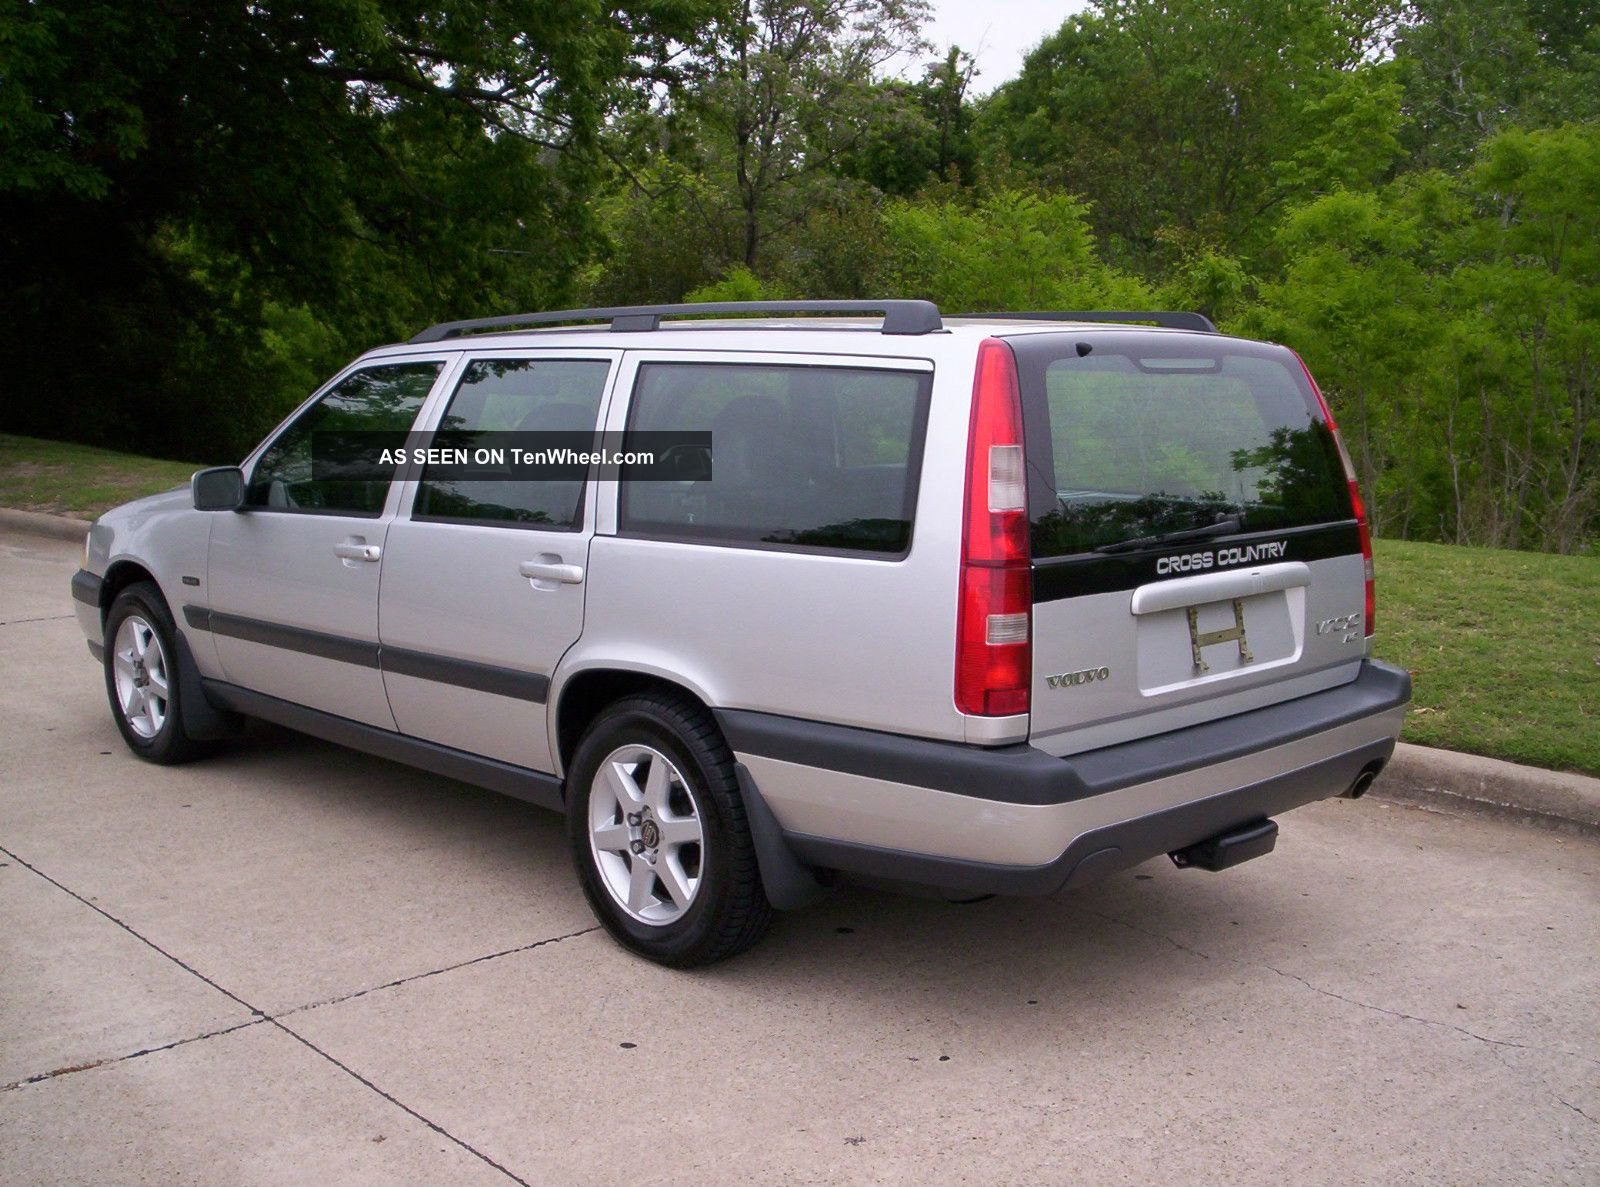 1998 Volvo Xc70 Cross Country, Texas Car, No Rust